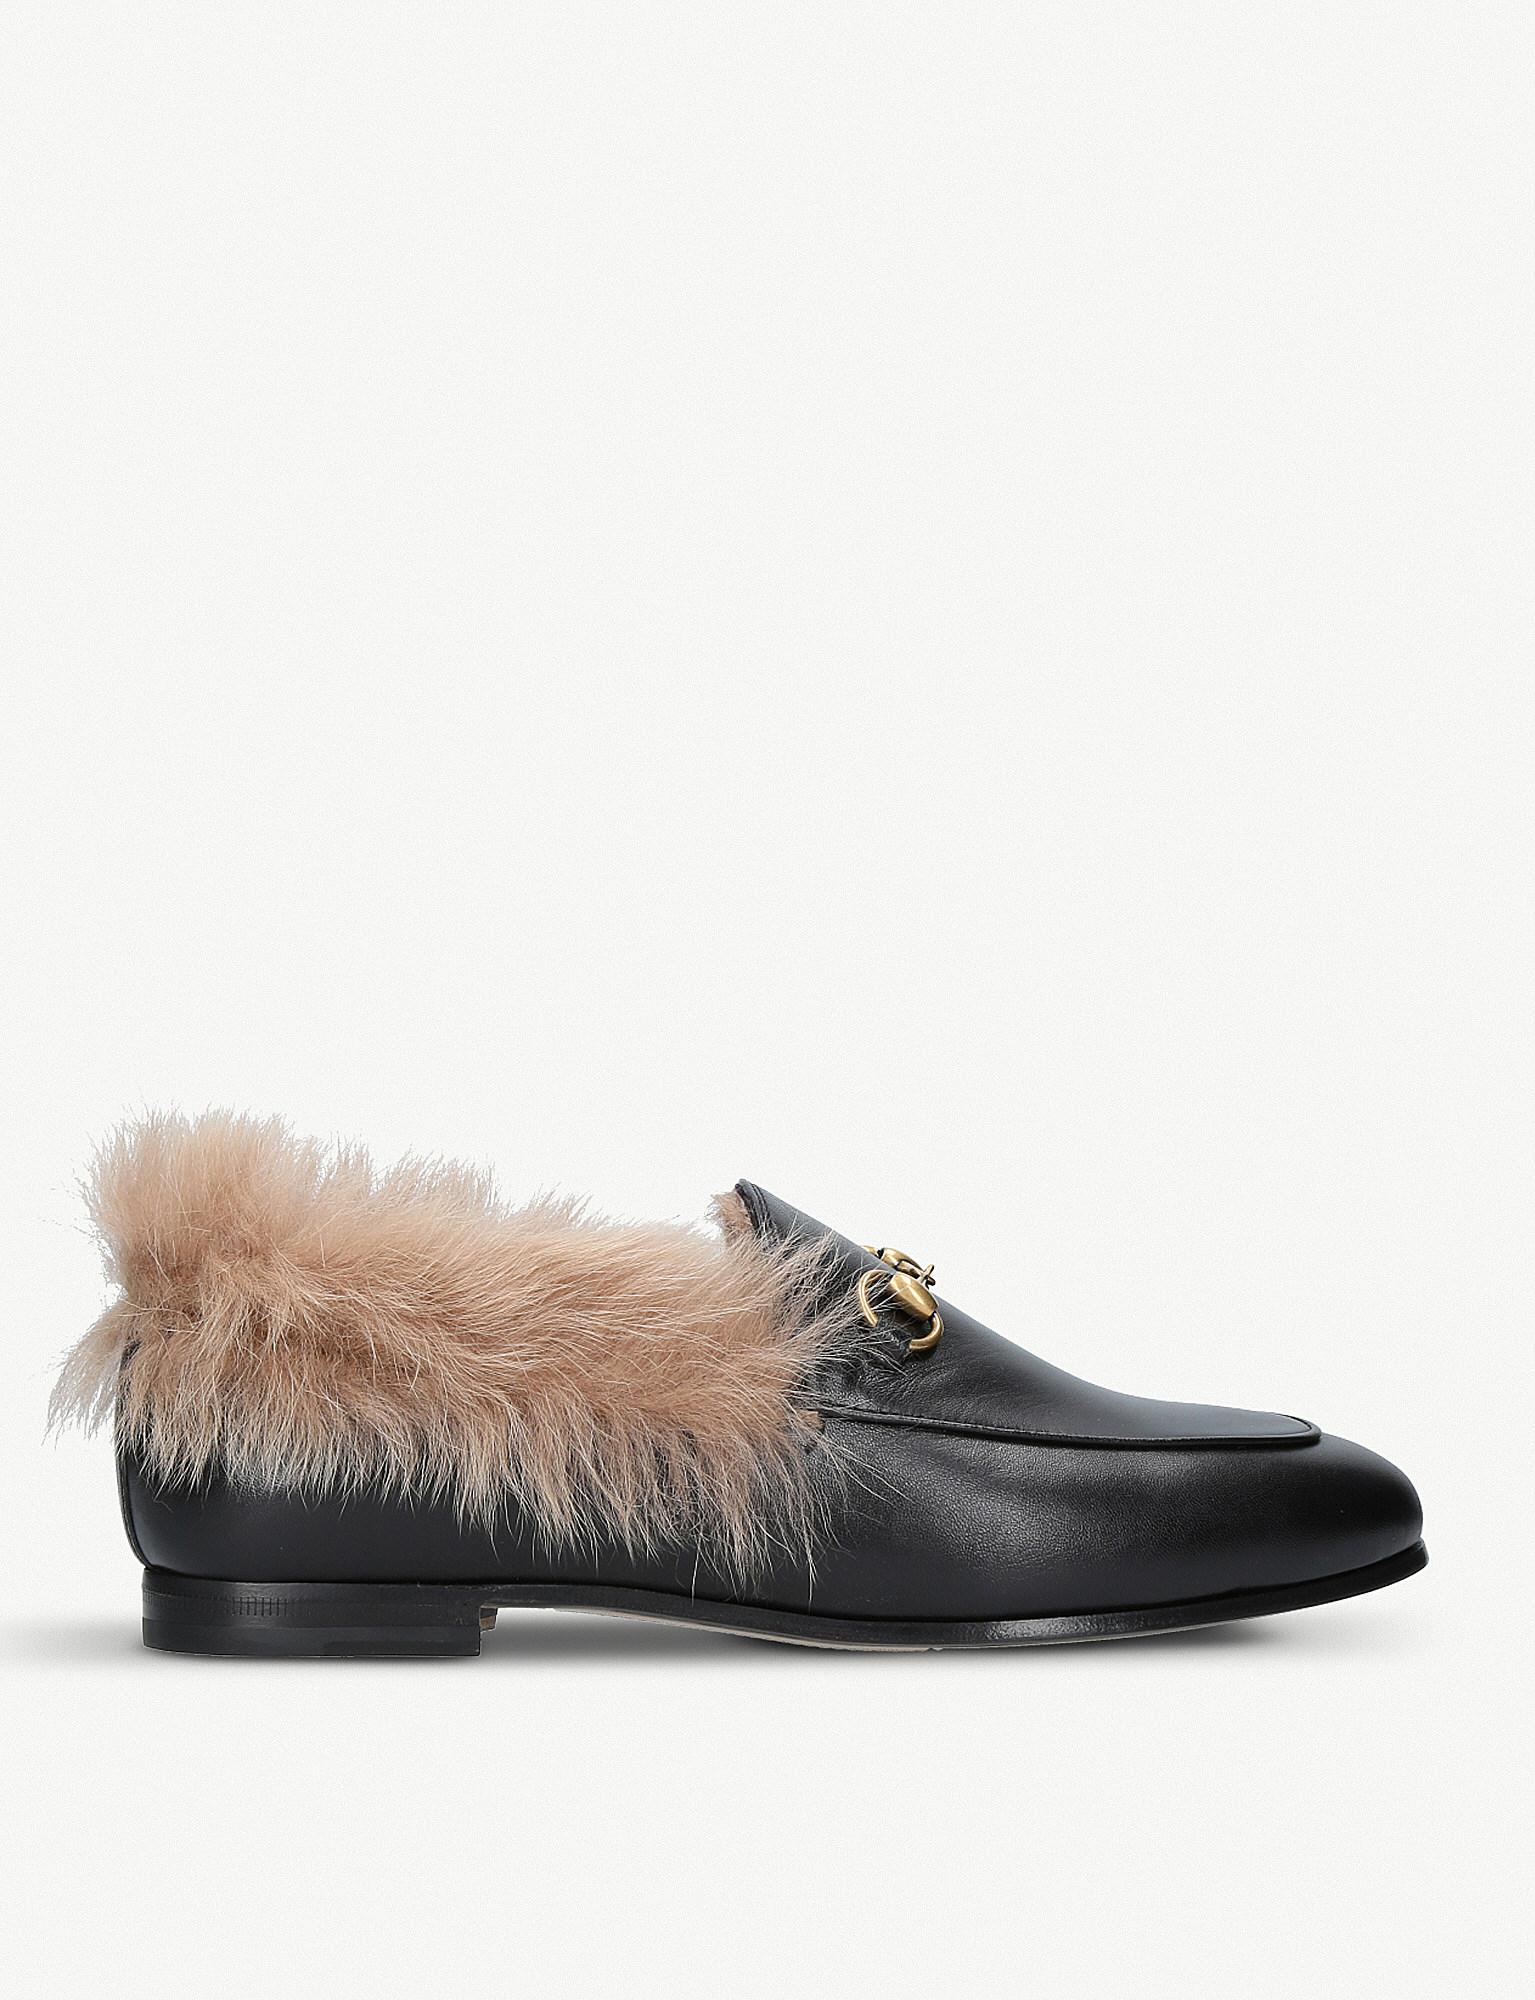 7def54103 Gucci Jordaan Leather And Shearling Loafers in Black - Lyst